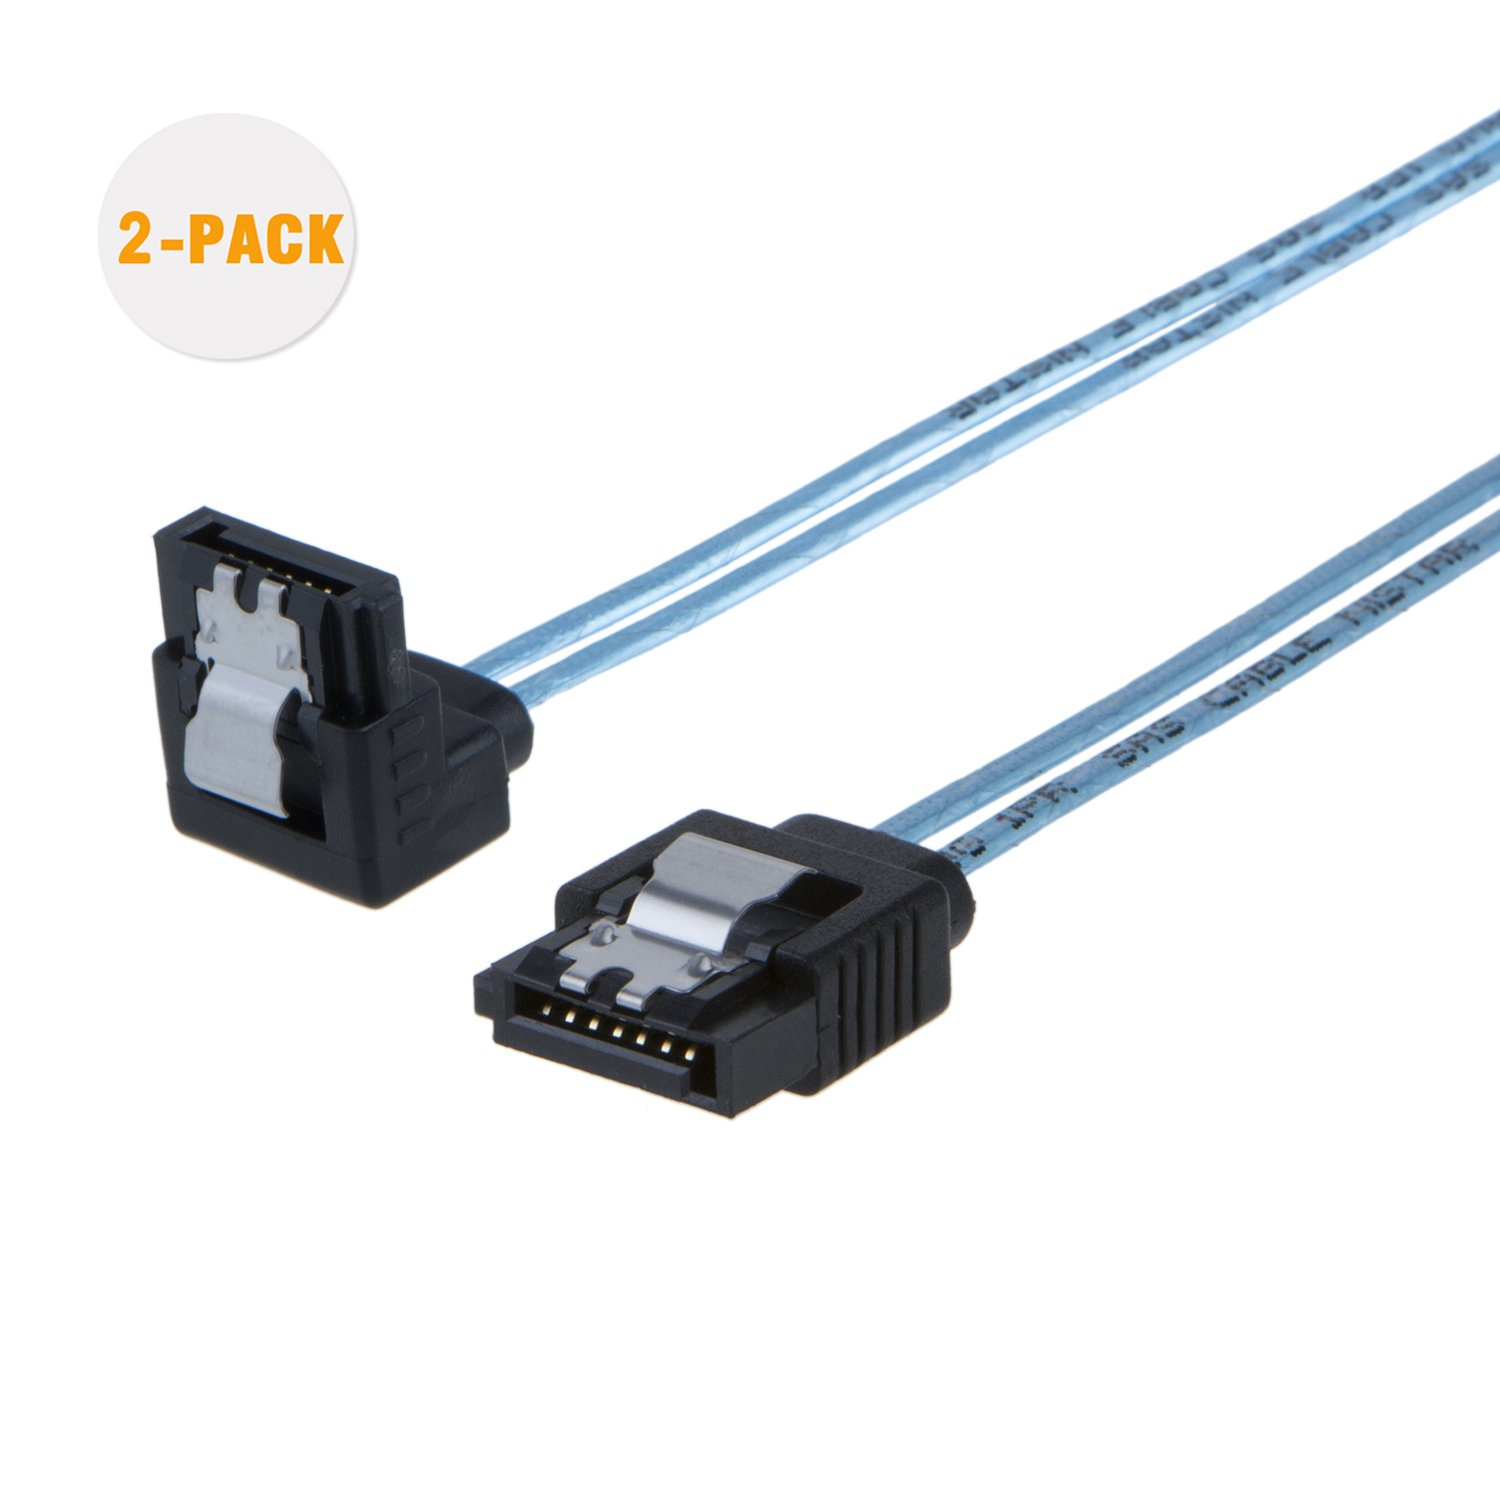 CableCreation SATA III Cable, [2-Pack] 18-inch SATA III 6.0 Gbps 7pin Female Straight to Down Angle Female Data Cable with Locking Latch, 0.6 FT Blue CS0059